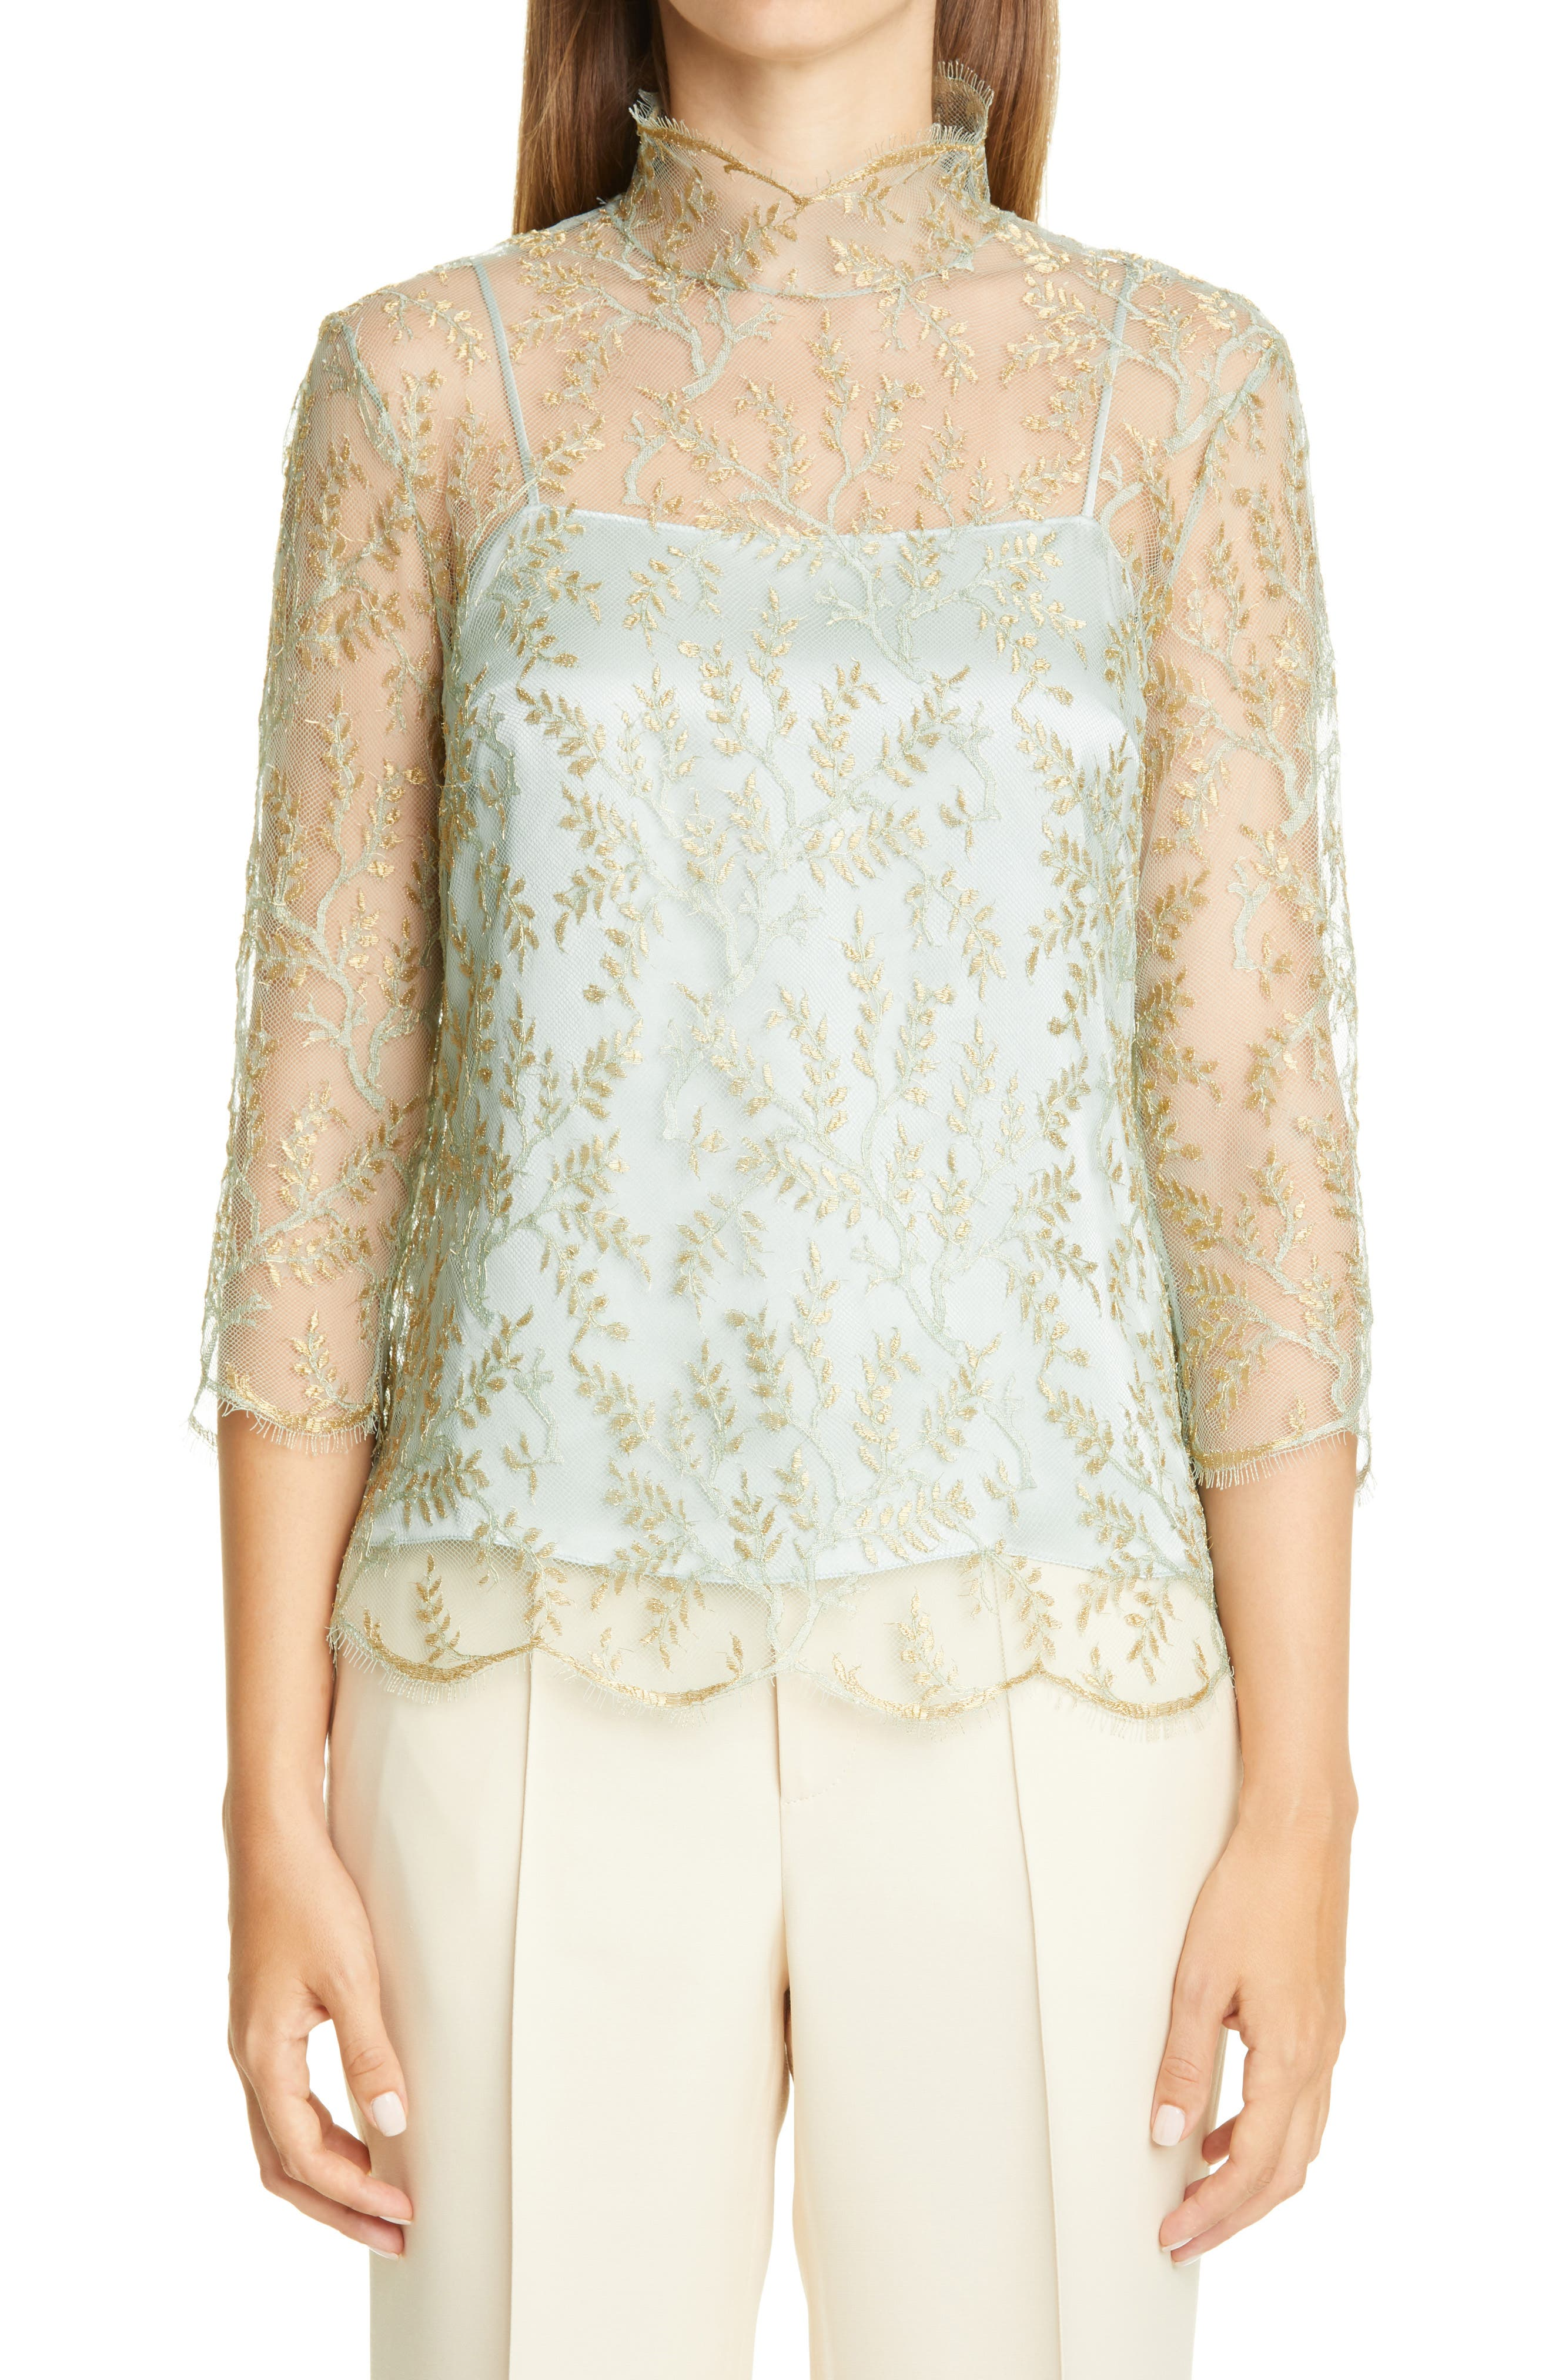 Image of Adam Lippes Layered Chantilly Lace Blouse